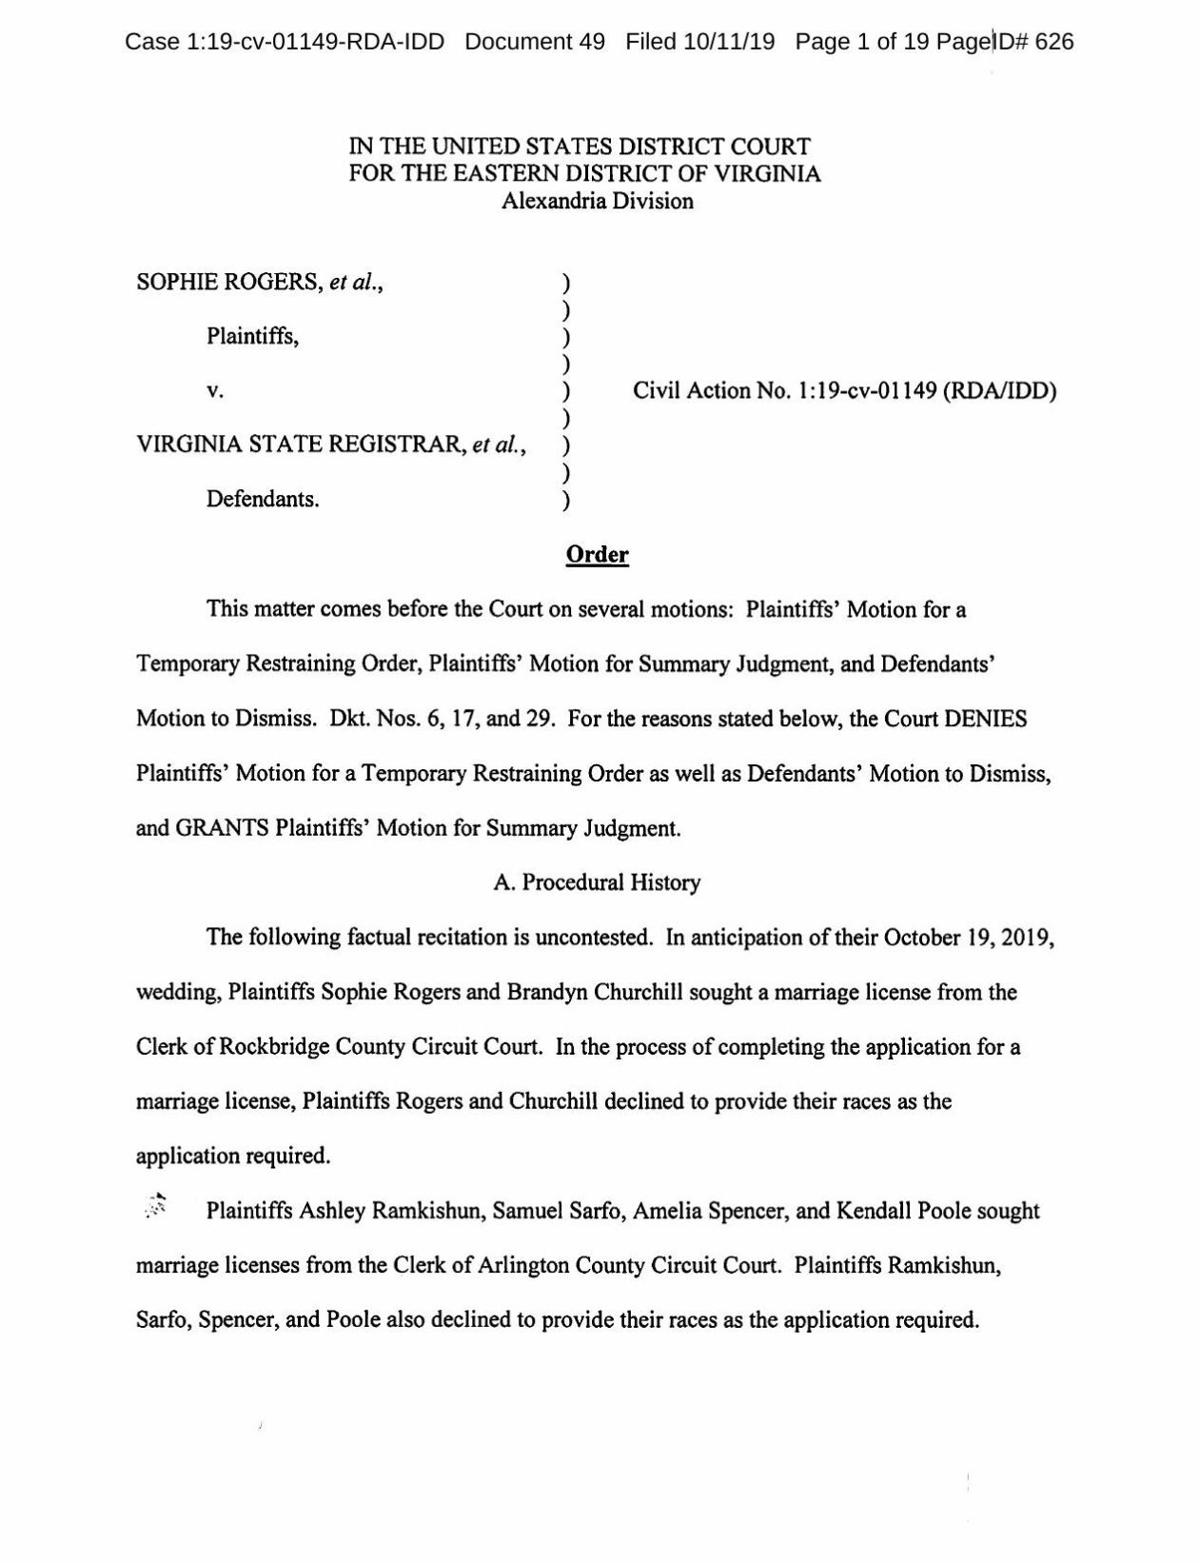 Ruling in lawsuit on race question